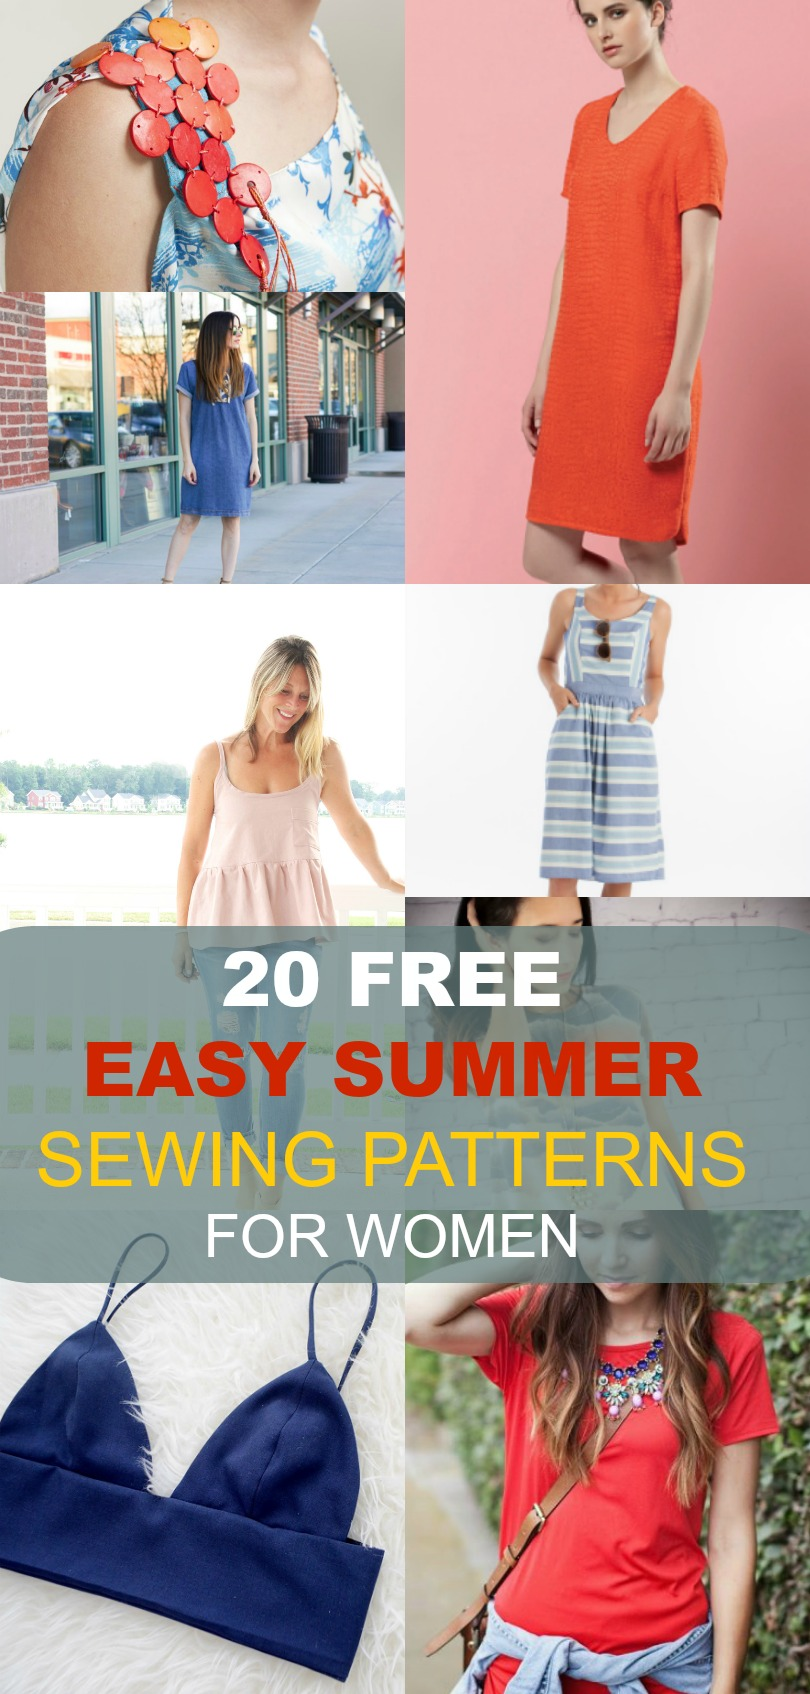 Free sewing patterns 20 easy summer patterns for women on the free sewing patterns 20 easy summer patterns for women jeuxipadfo Images